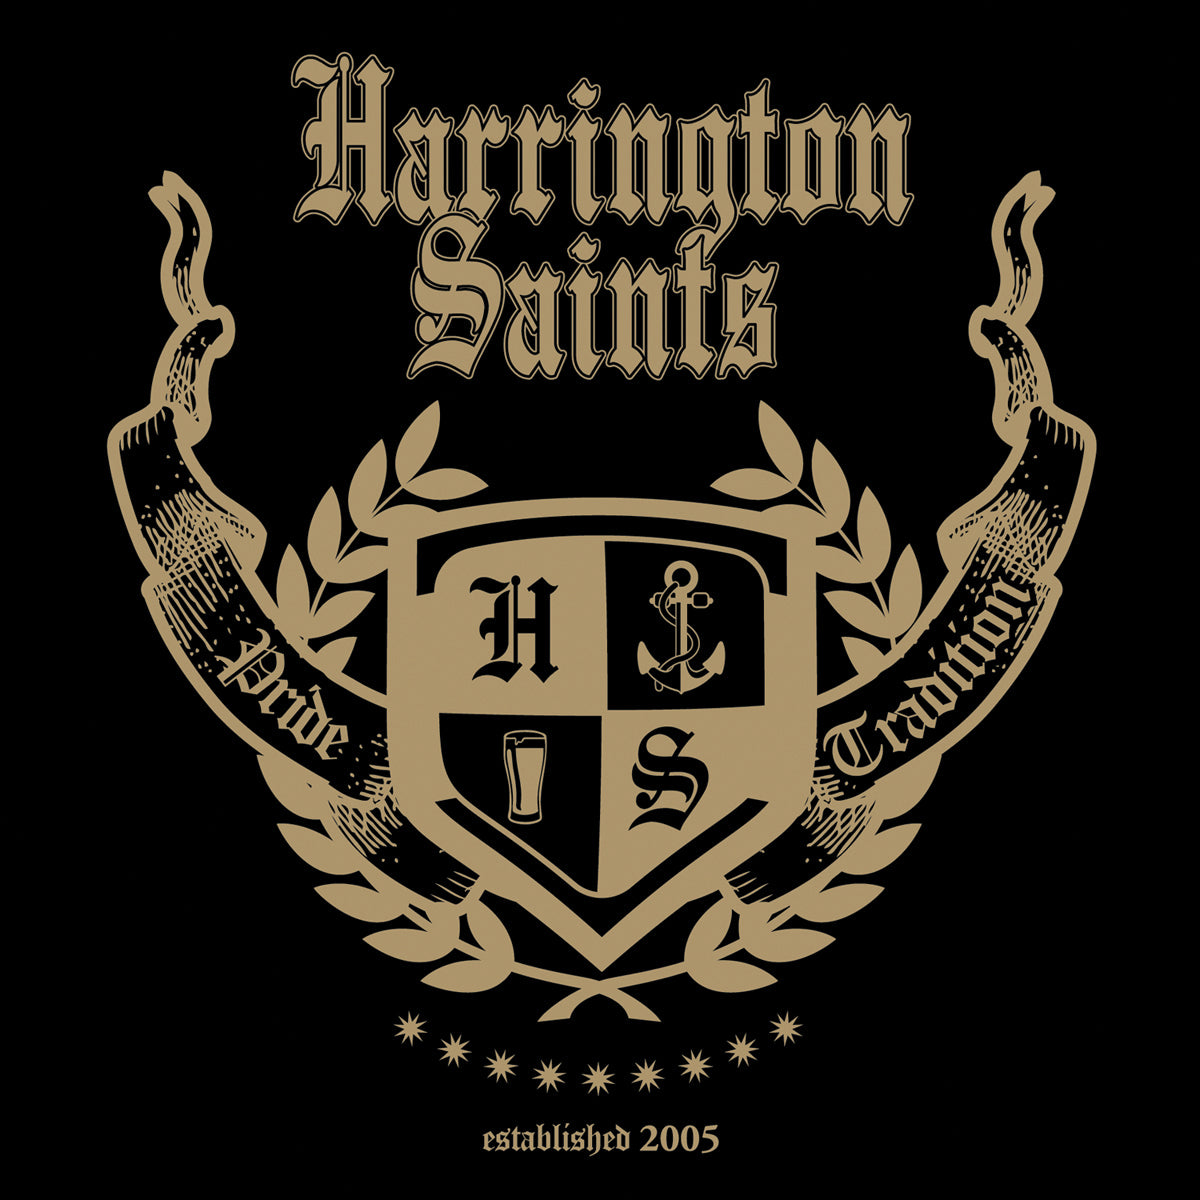 Harrington Saints - Pride & Tradition LP / CD